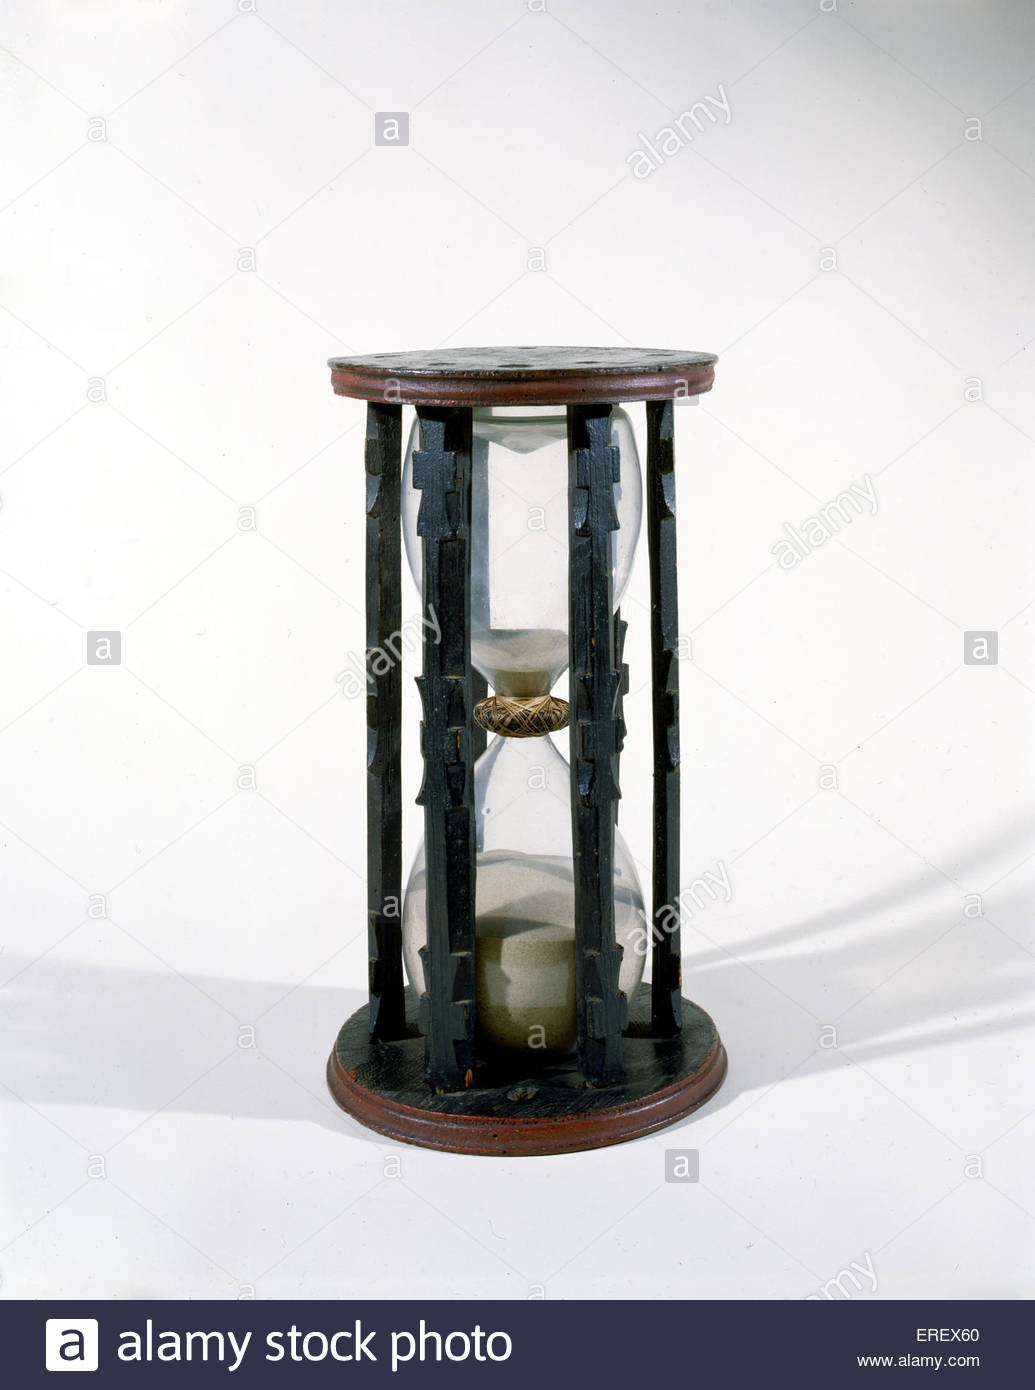 Ship 's hour glass - basic timepiece for ships in 15th/16th century - Stock Image